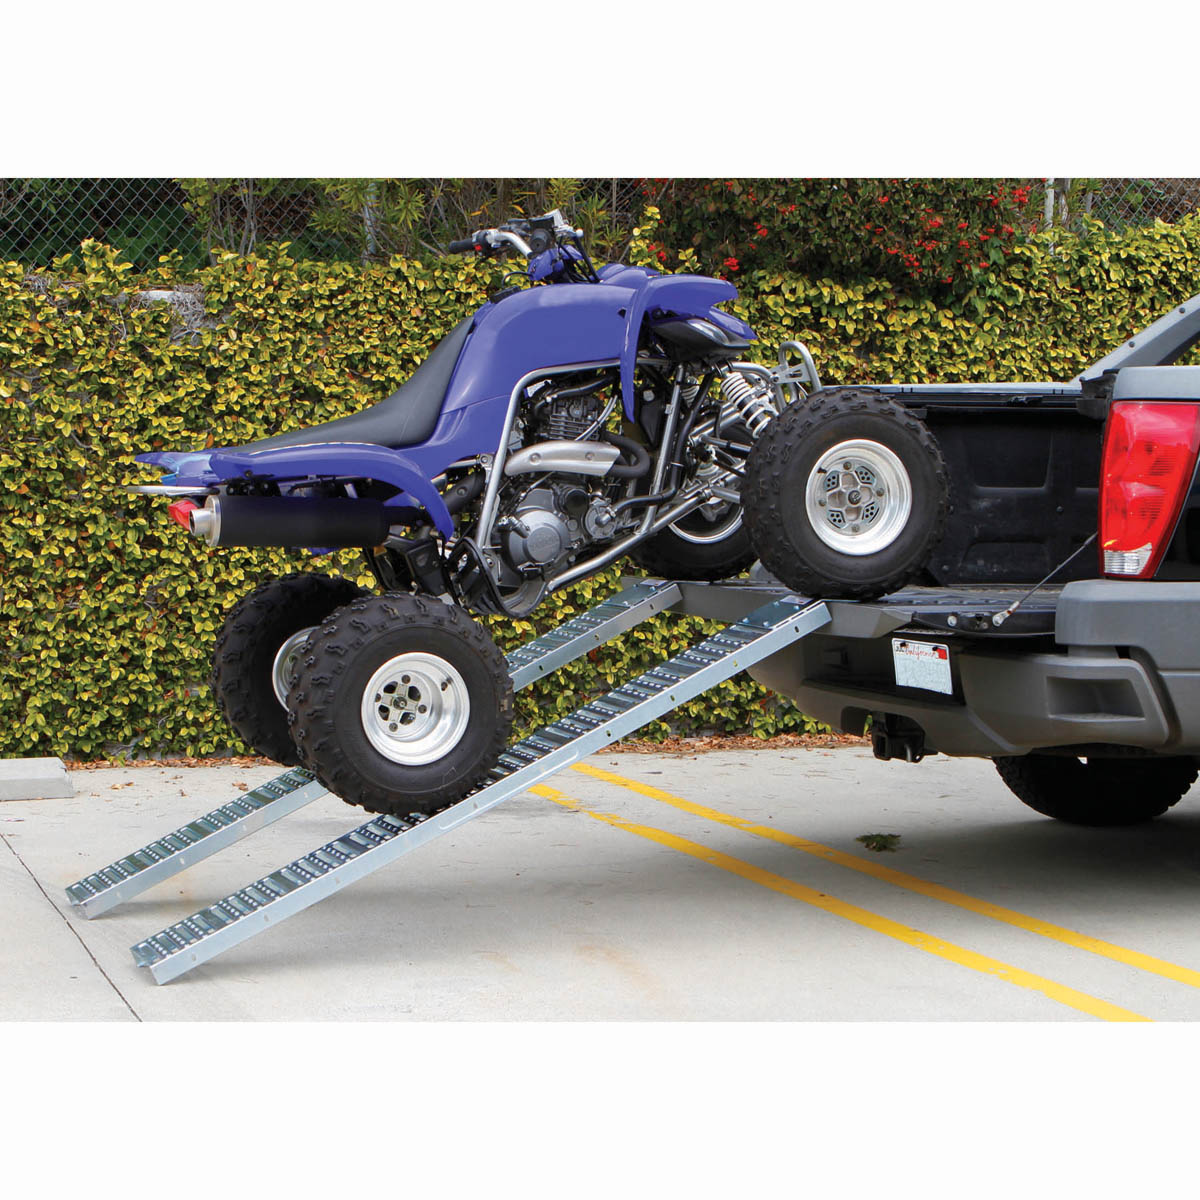 Harbor Freight Mower : Lbs capacity in steel loading ramps